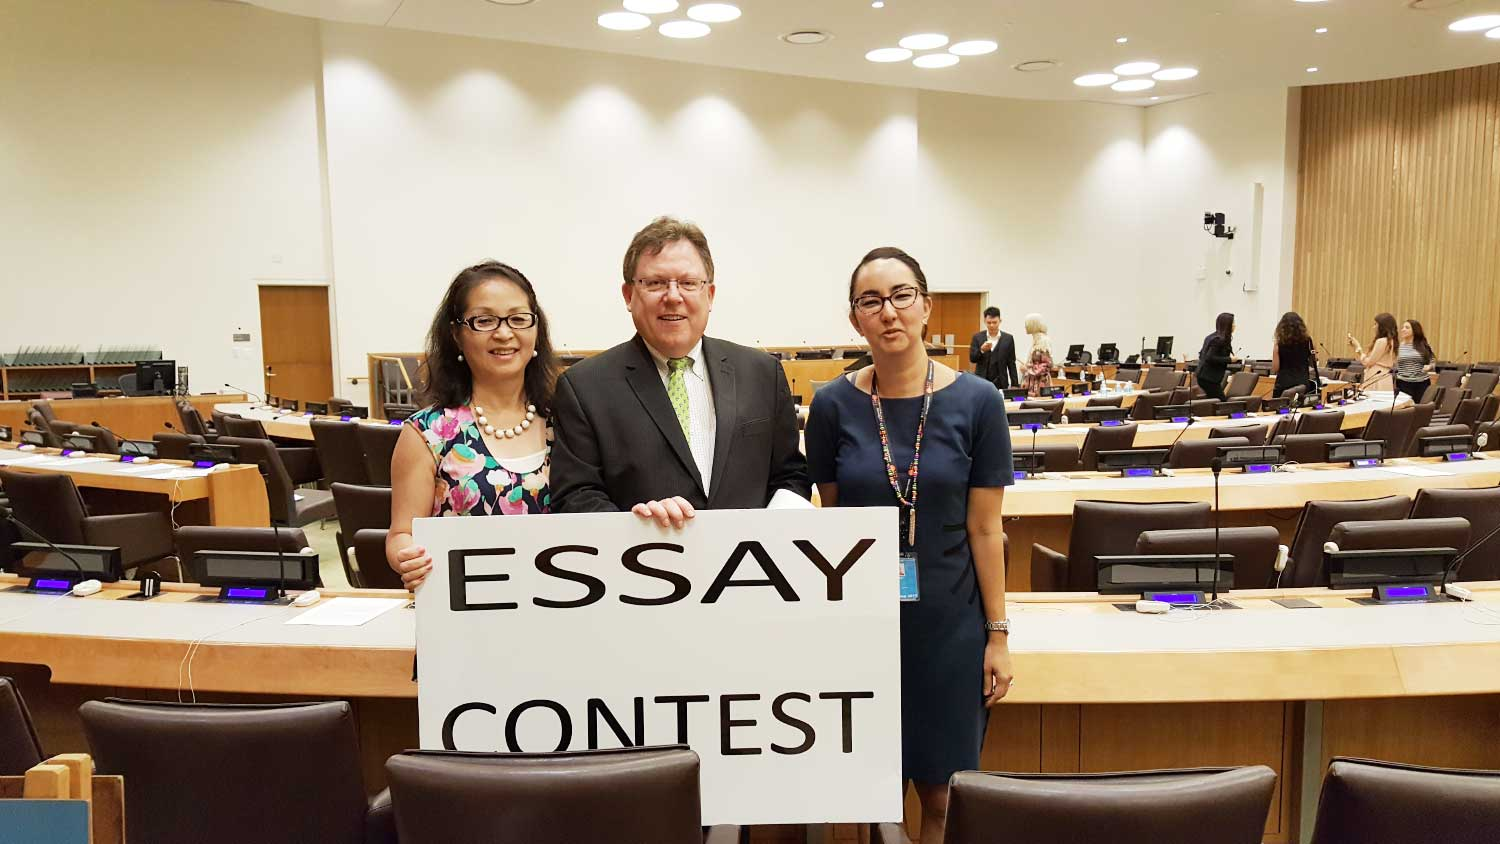 Photo: 3 adults in conference room with Essay Contest sign